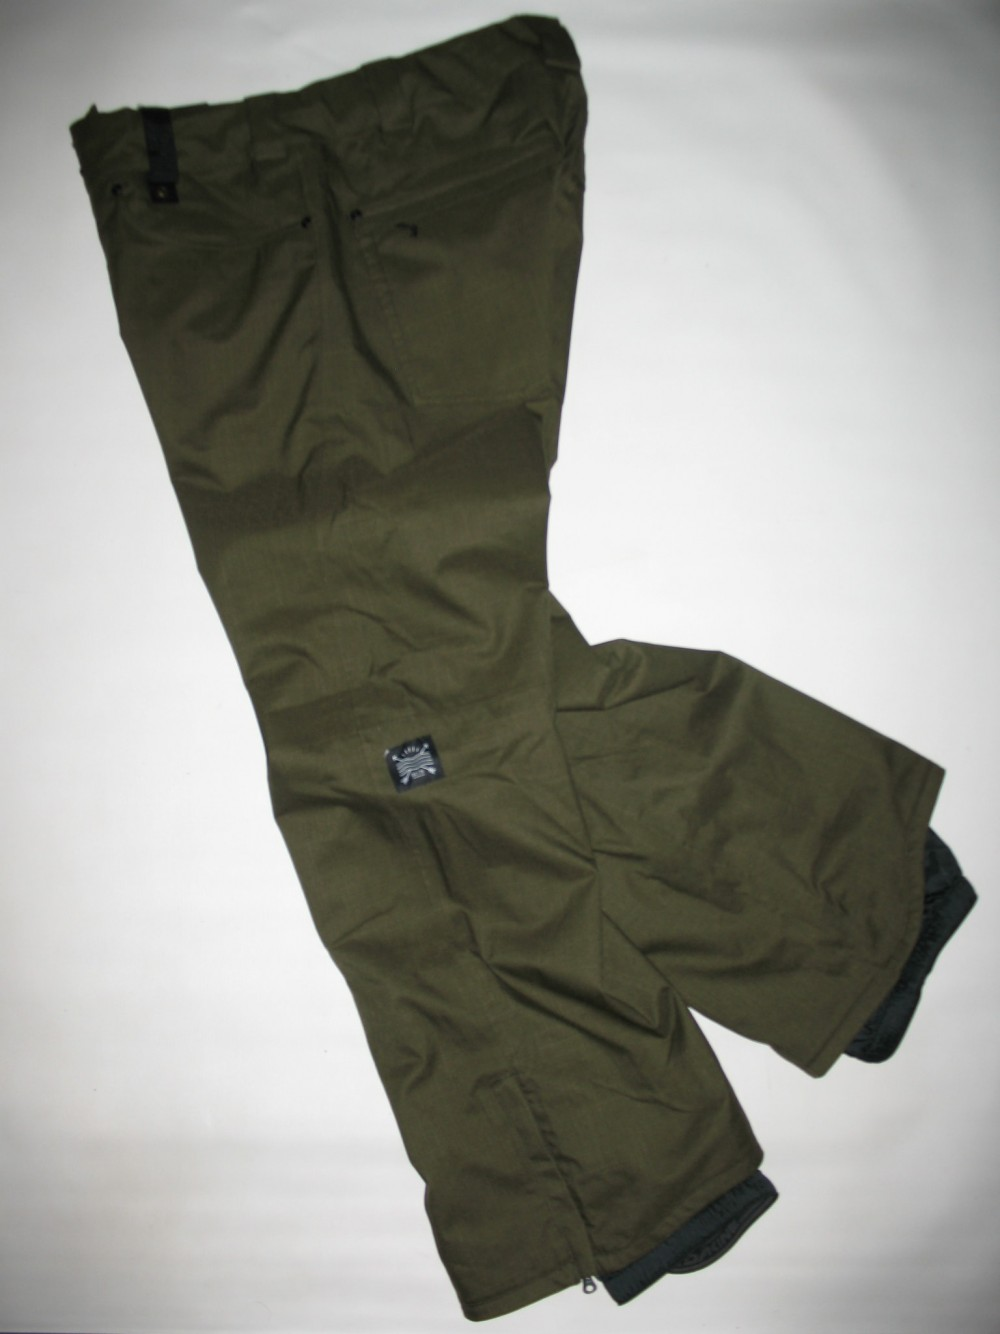 Штаны DAKINE Miner jungle ski/snowboard pants (размер L) - 5